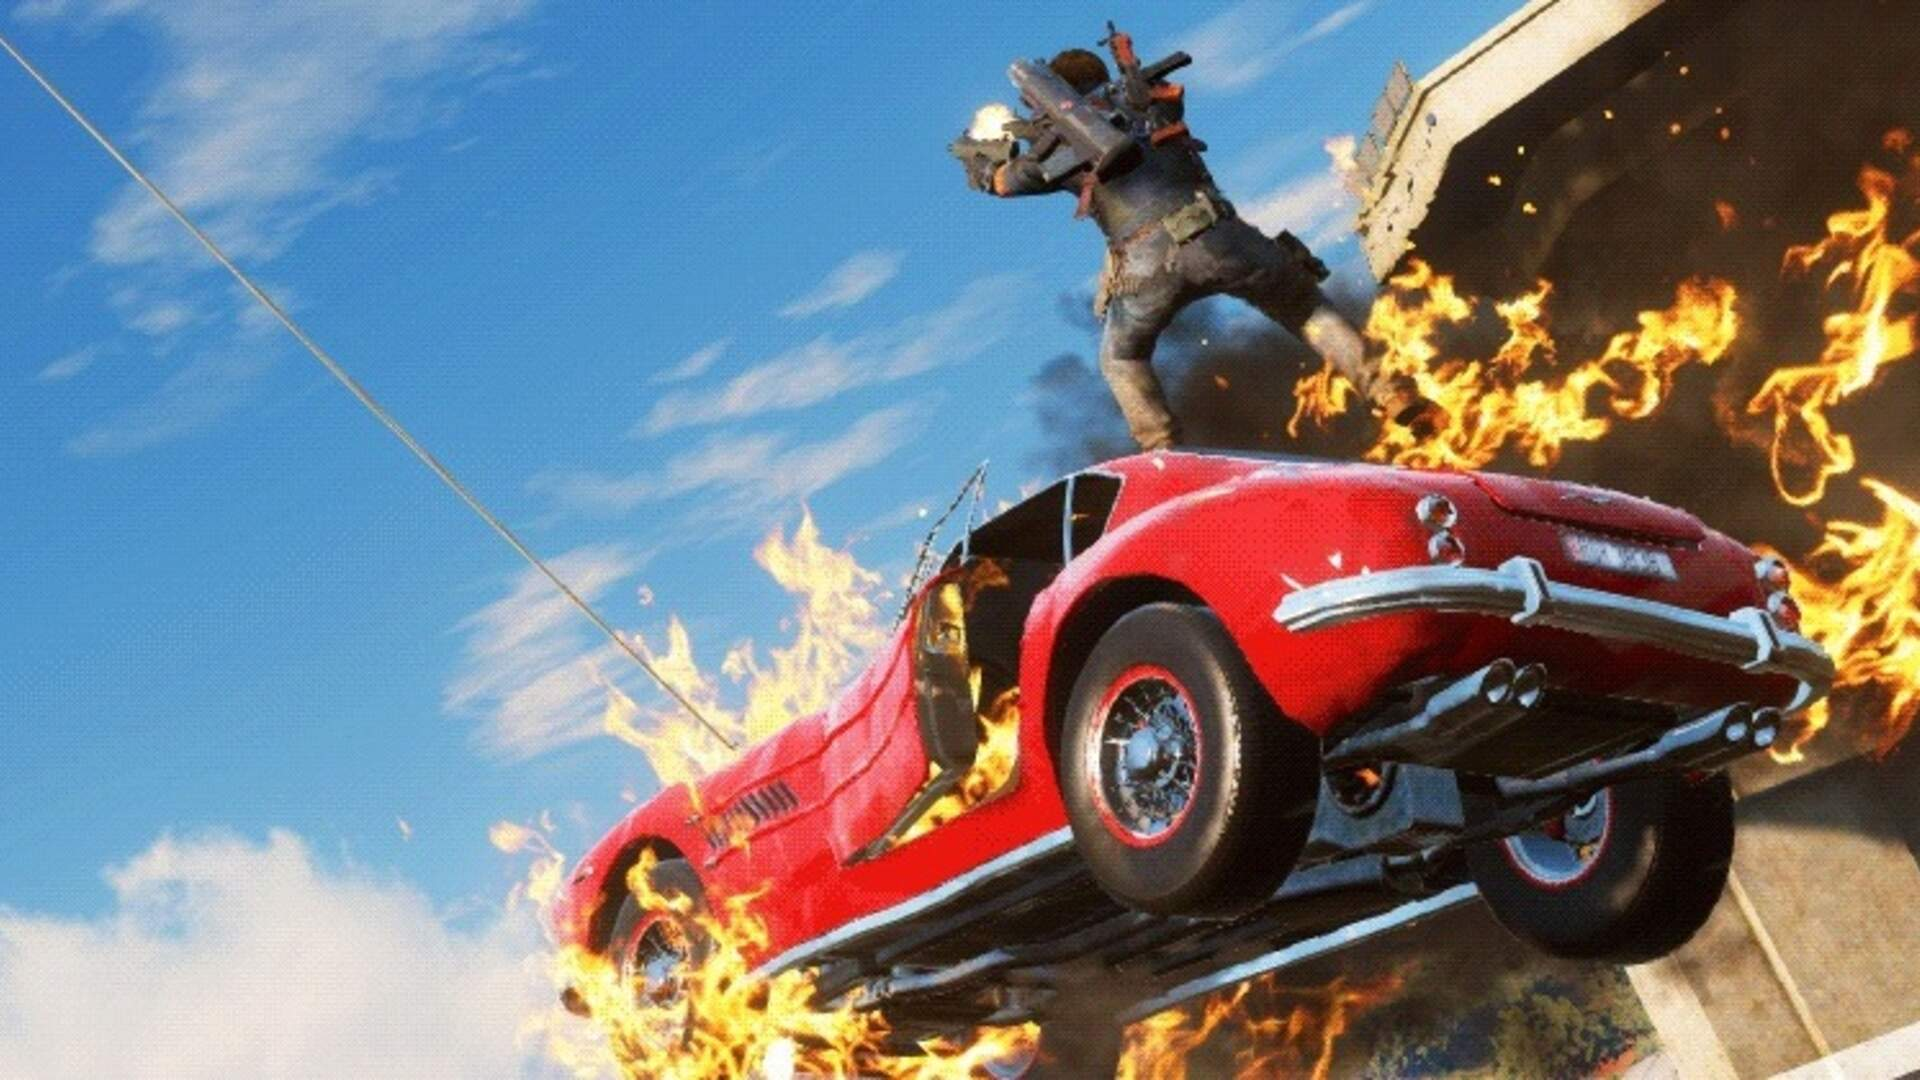 Just Cause 3 Story Mission Guide: Welcome Home Walkthrough